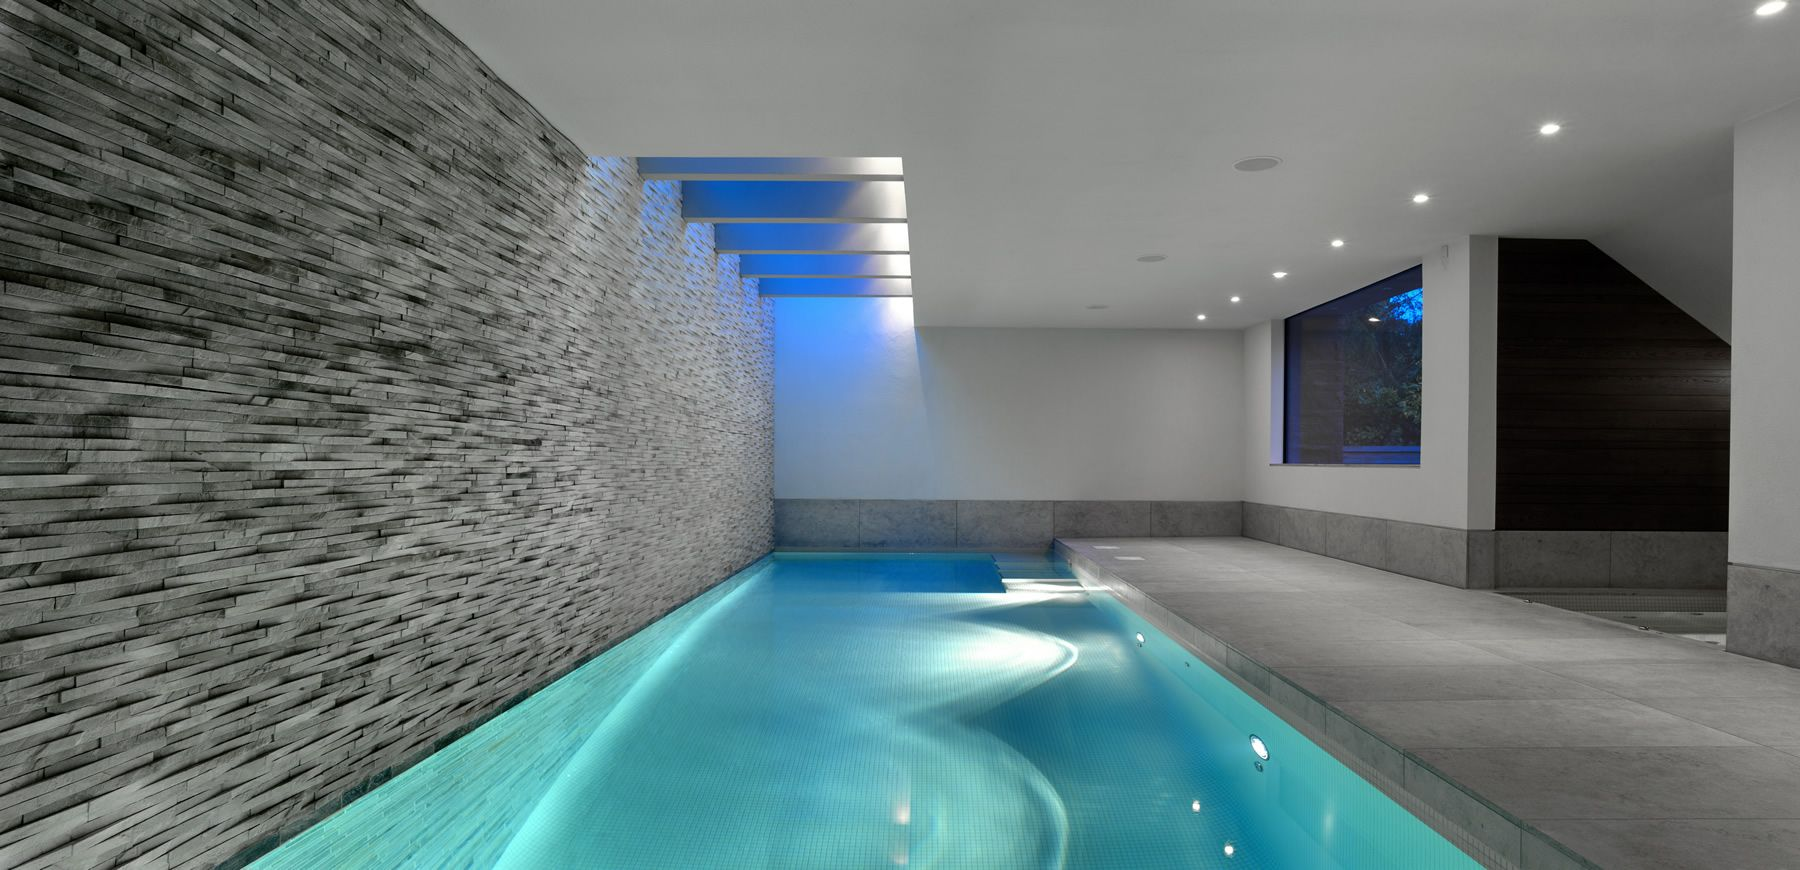 Indoor Swimming Pool. Indoor Swimming Pool ] - Deltasport.co